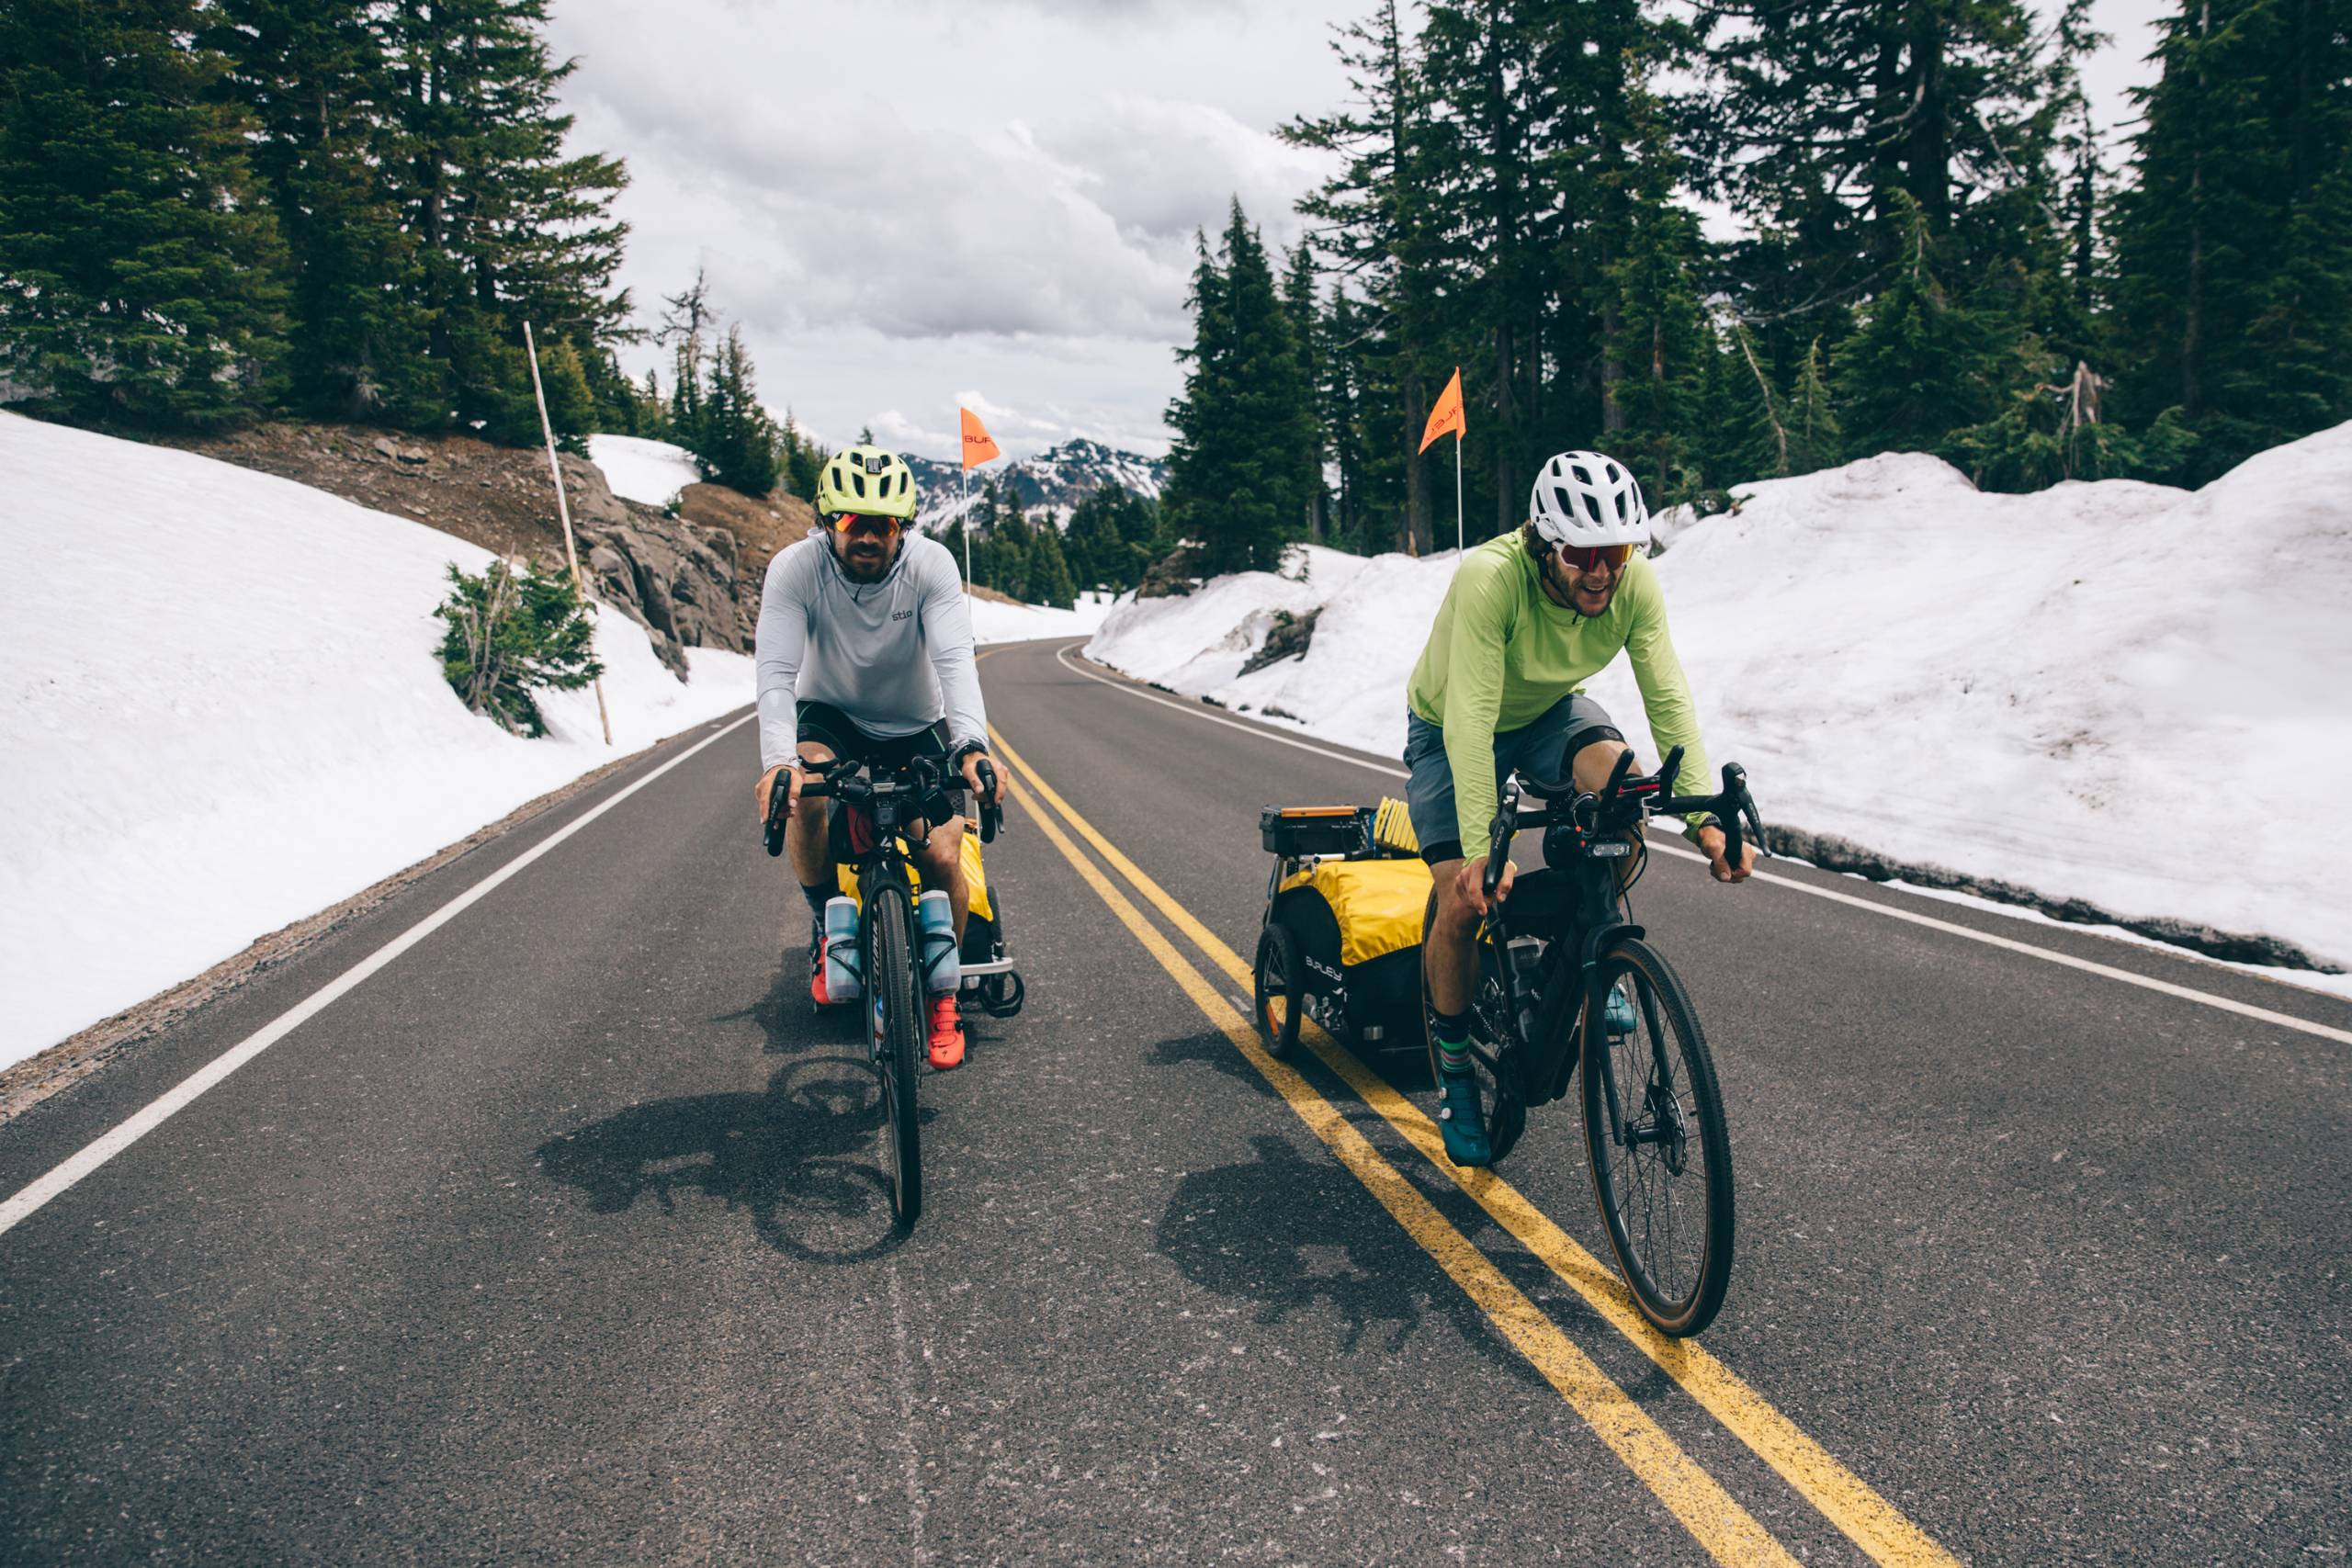 two guys on bikes with trailers pedaling on road lined with snow